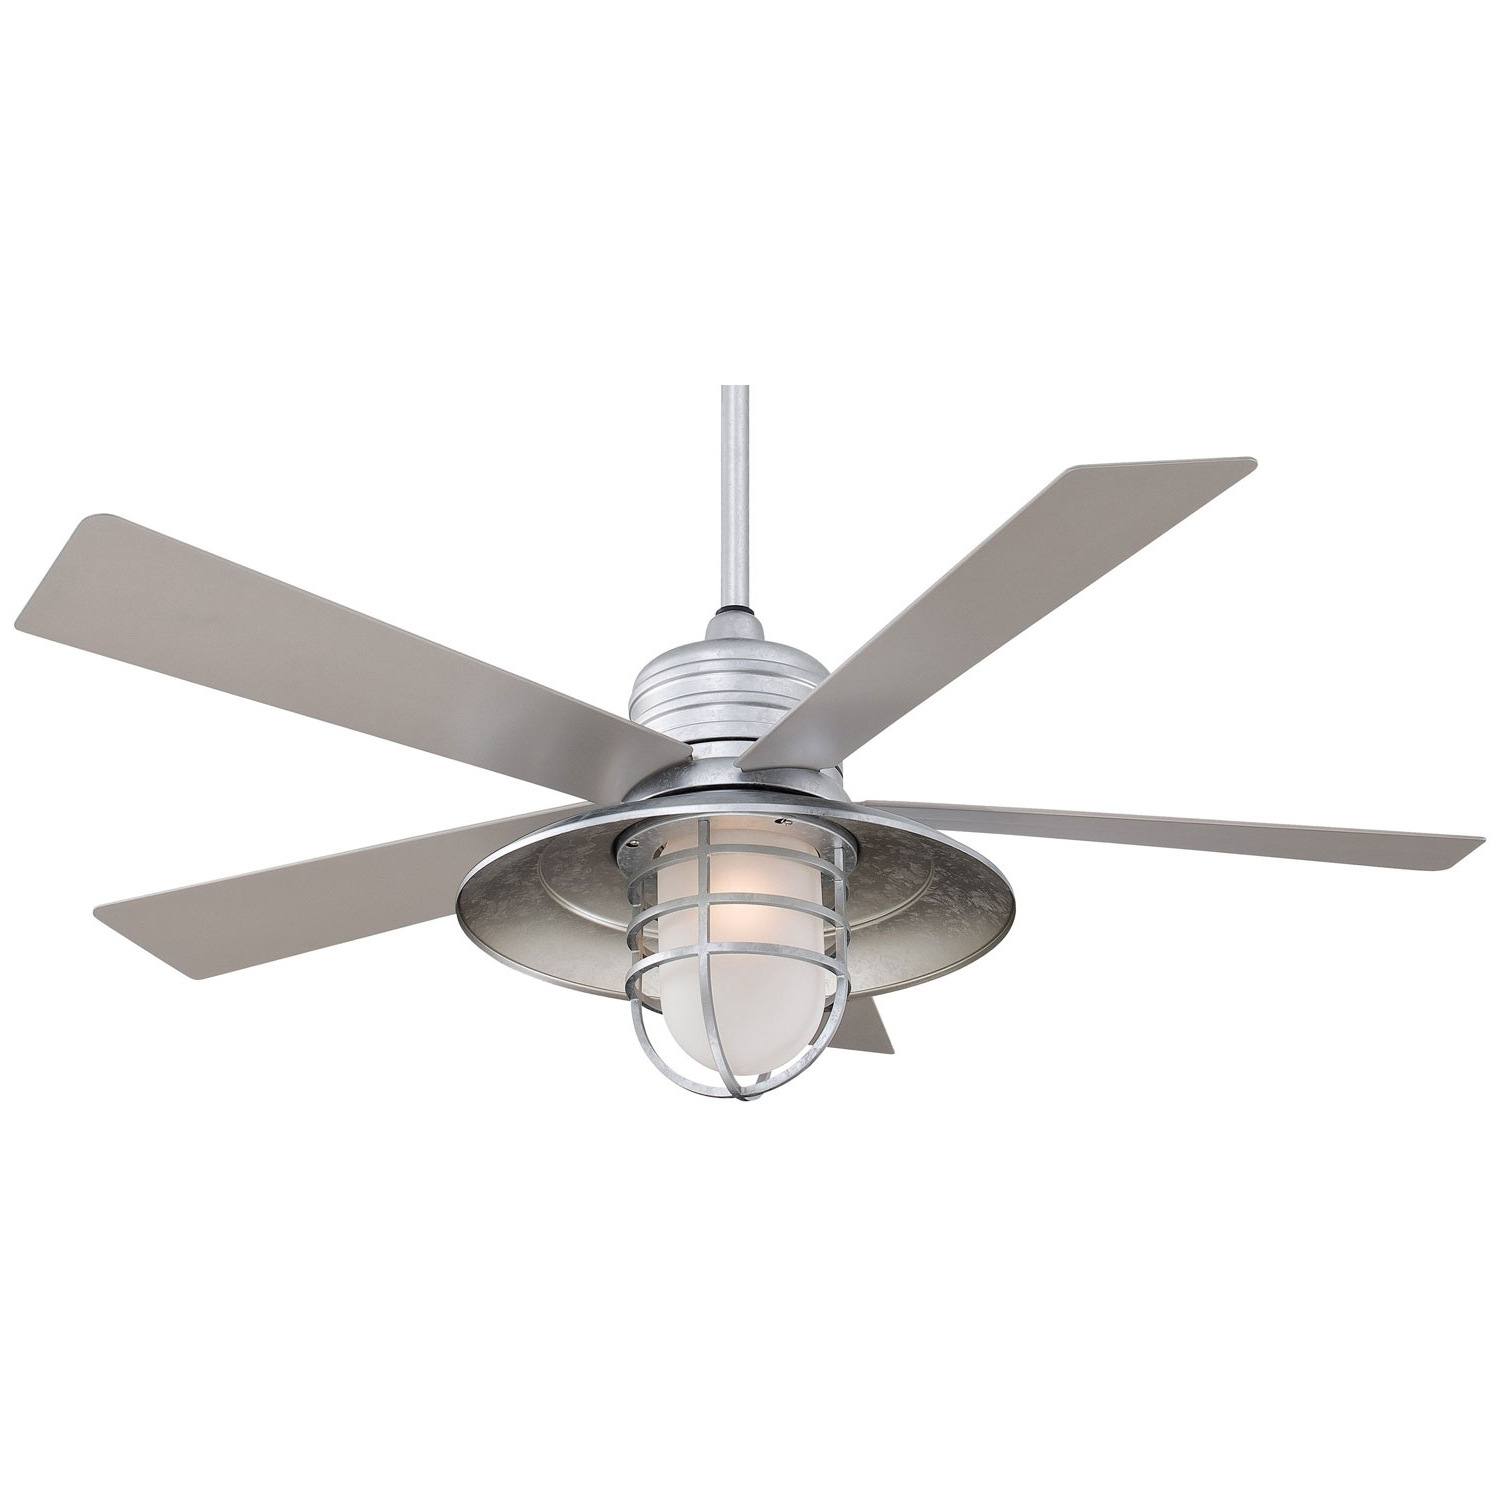 Most Recently Released Outdoor Ceiling Fans With Galvanized Blades Regarding Minka Aire Rainman Galvanized 54 Inch Blade Indoor/outdoor Ceiling (Gallery 2 of 20)